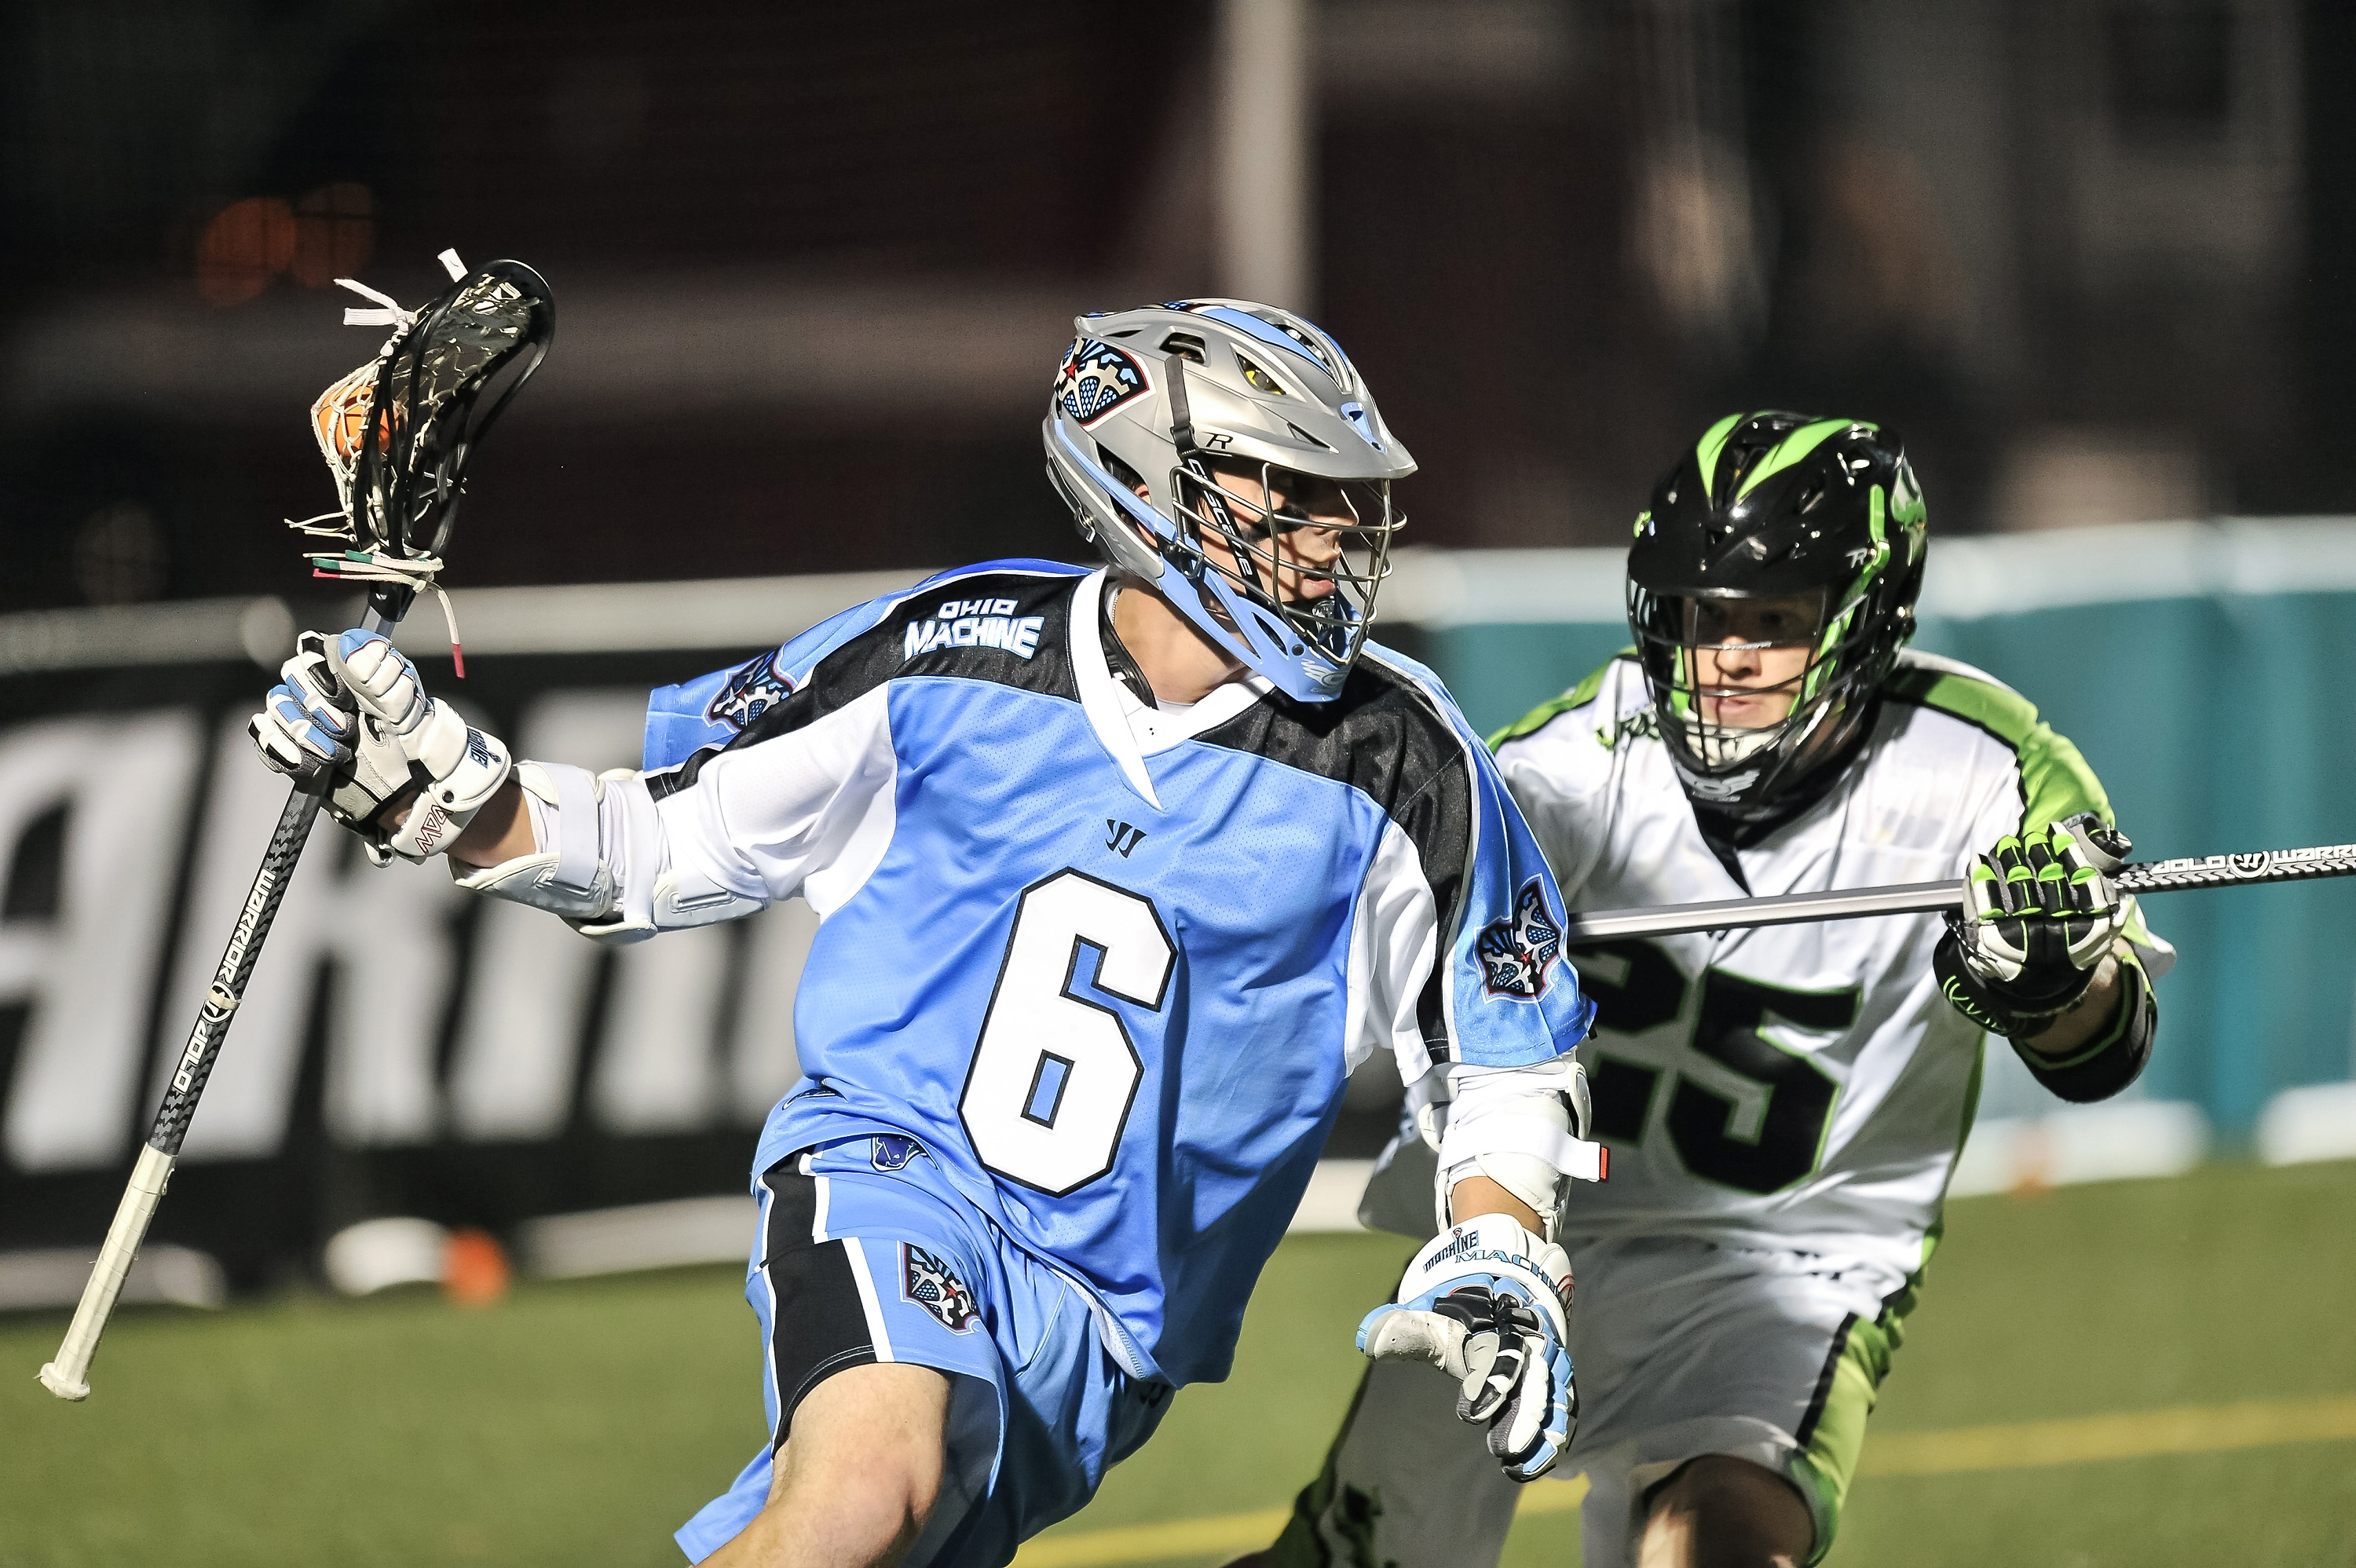 DELAWARE, OH - MAY 18:  Steele Stanwick #6 of the Ohio Machine controls the ball against the New York Lizards on May 18, 2013 at Selby Stadium in Delaware, Ohio.  (Photo by Jamie Sabau/Getty Images)